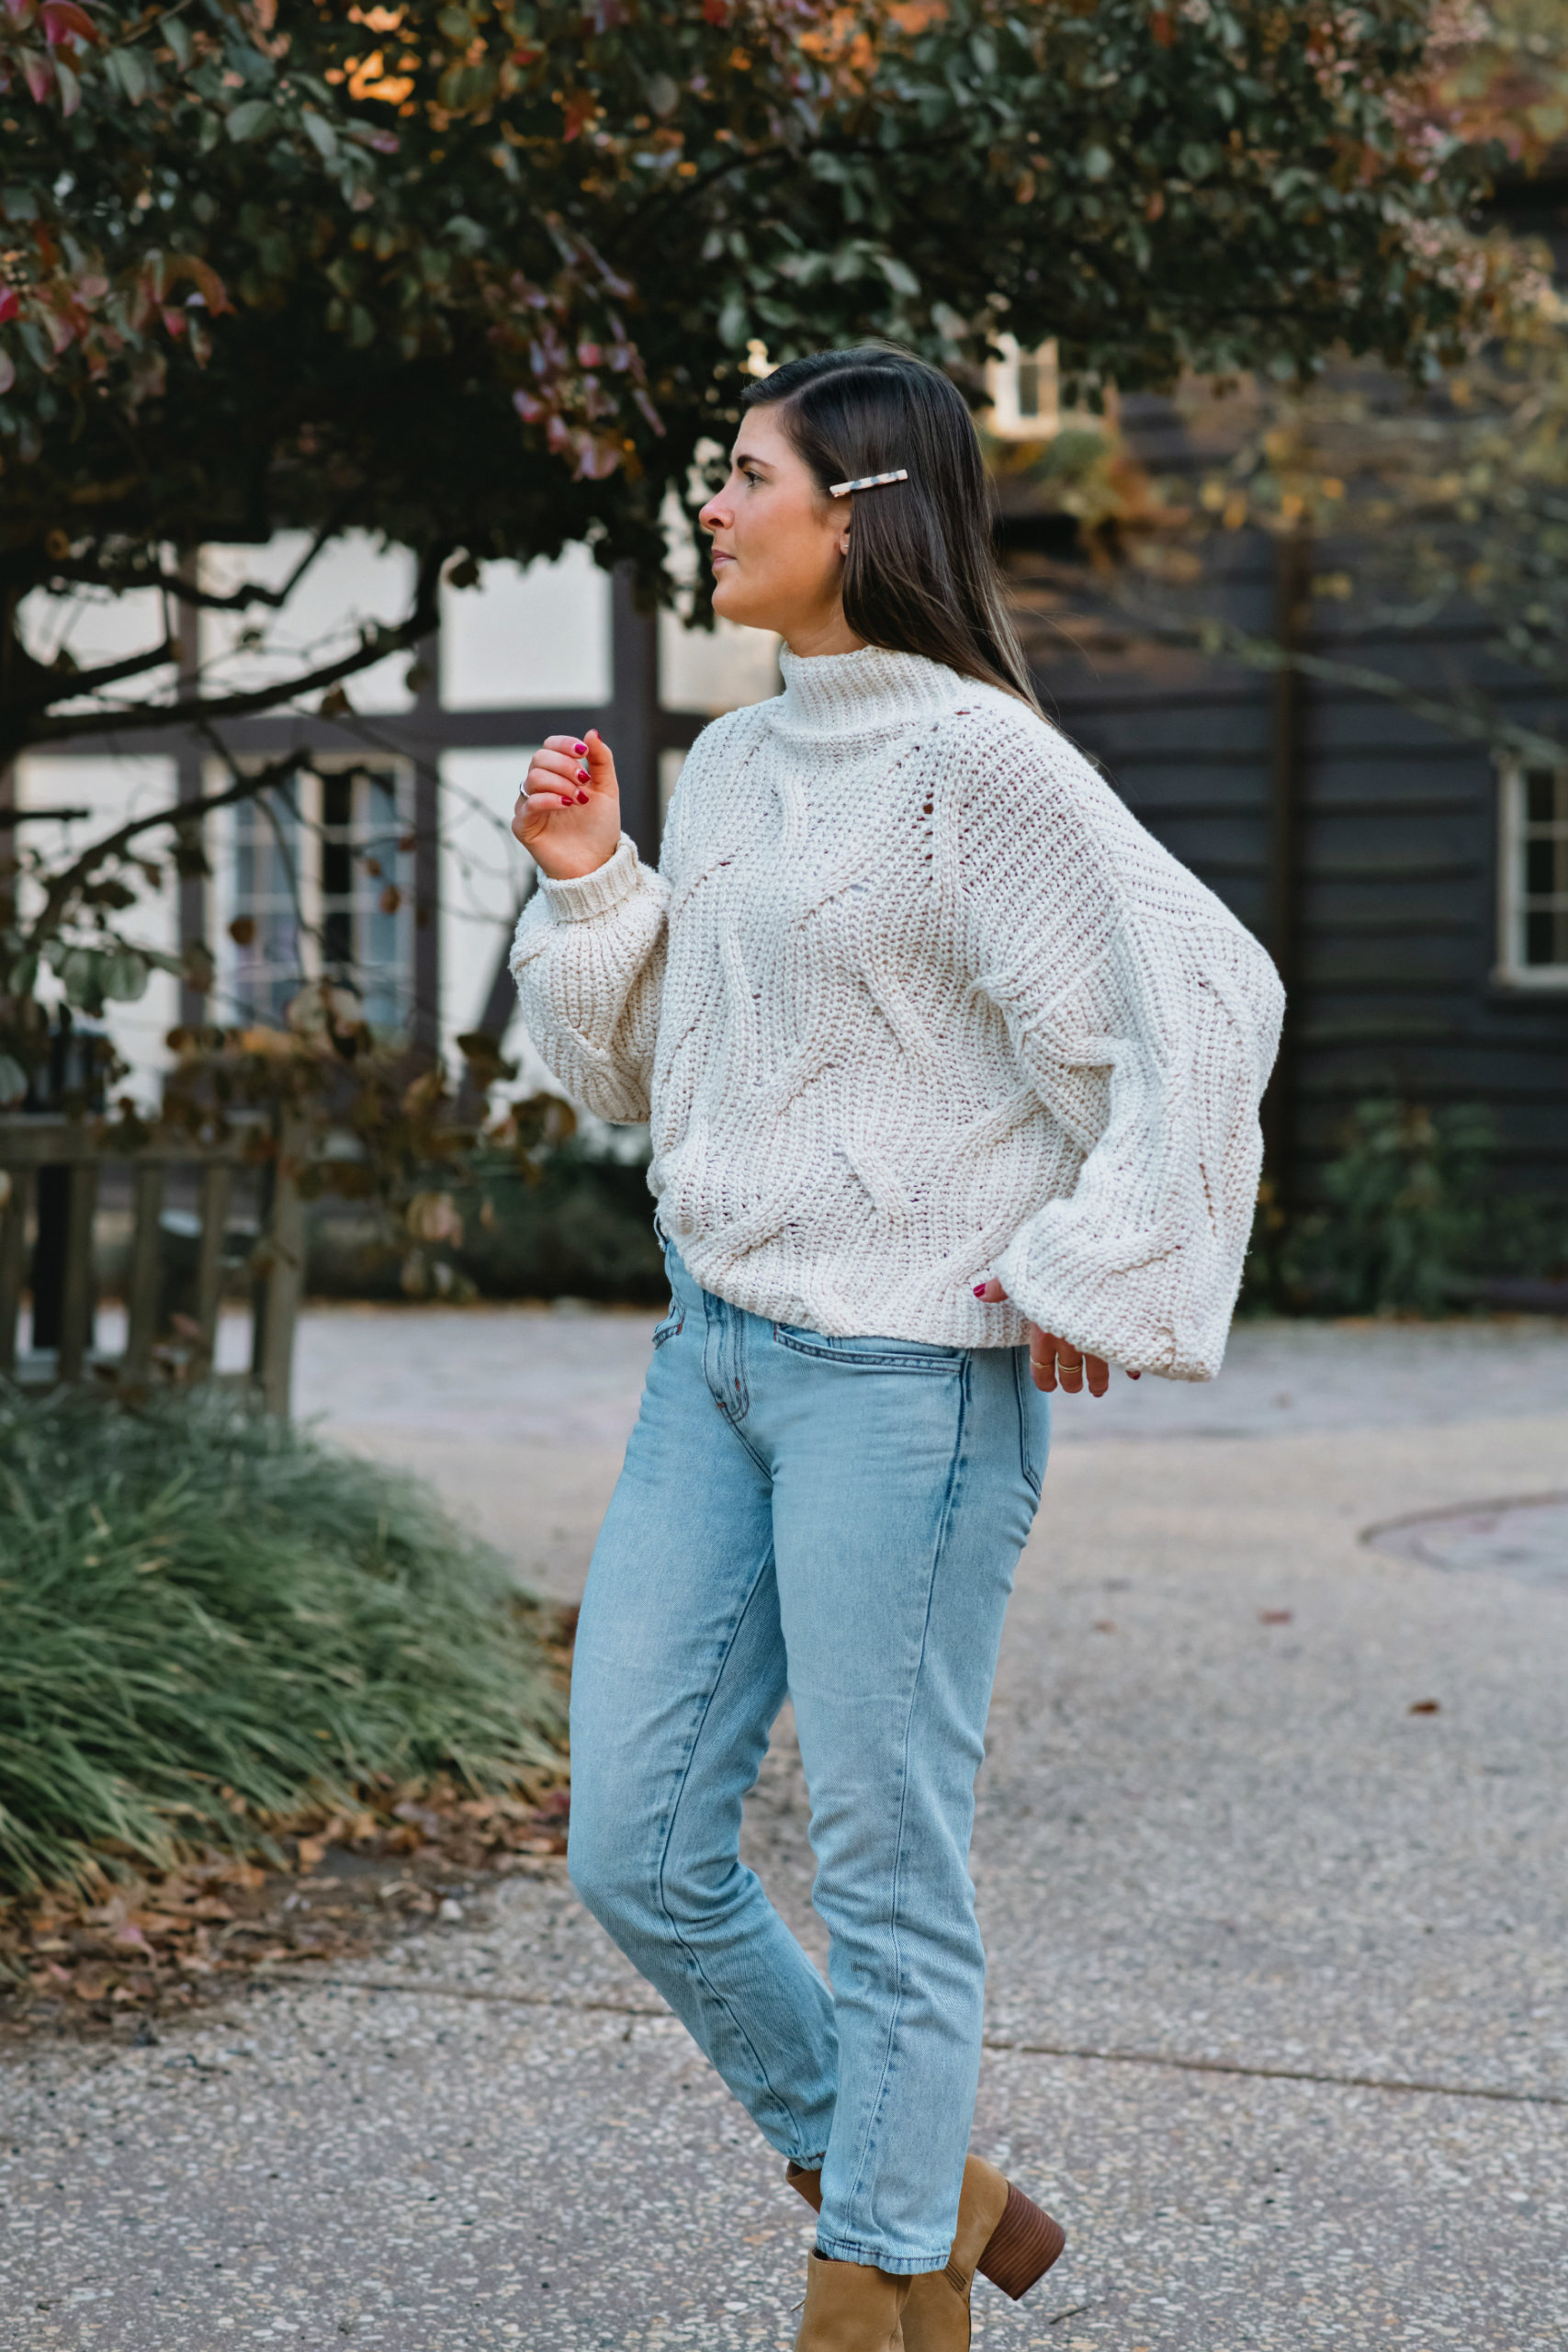 Free People Seasons Change Alabaster Sweater, Cozy Fall Knitwear, White Cable Knit Sweater Outfit, Tilden of To Be Bright